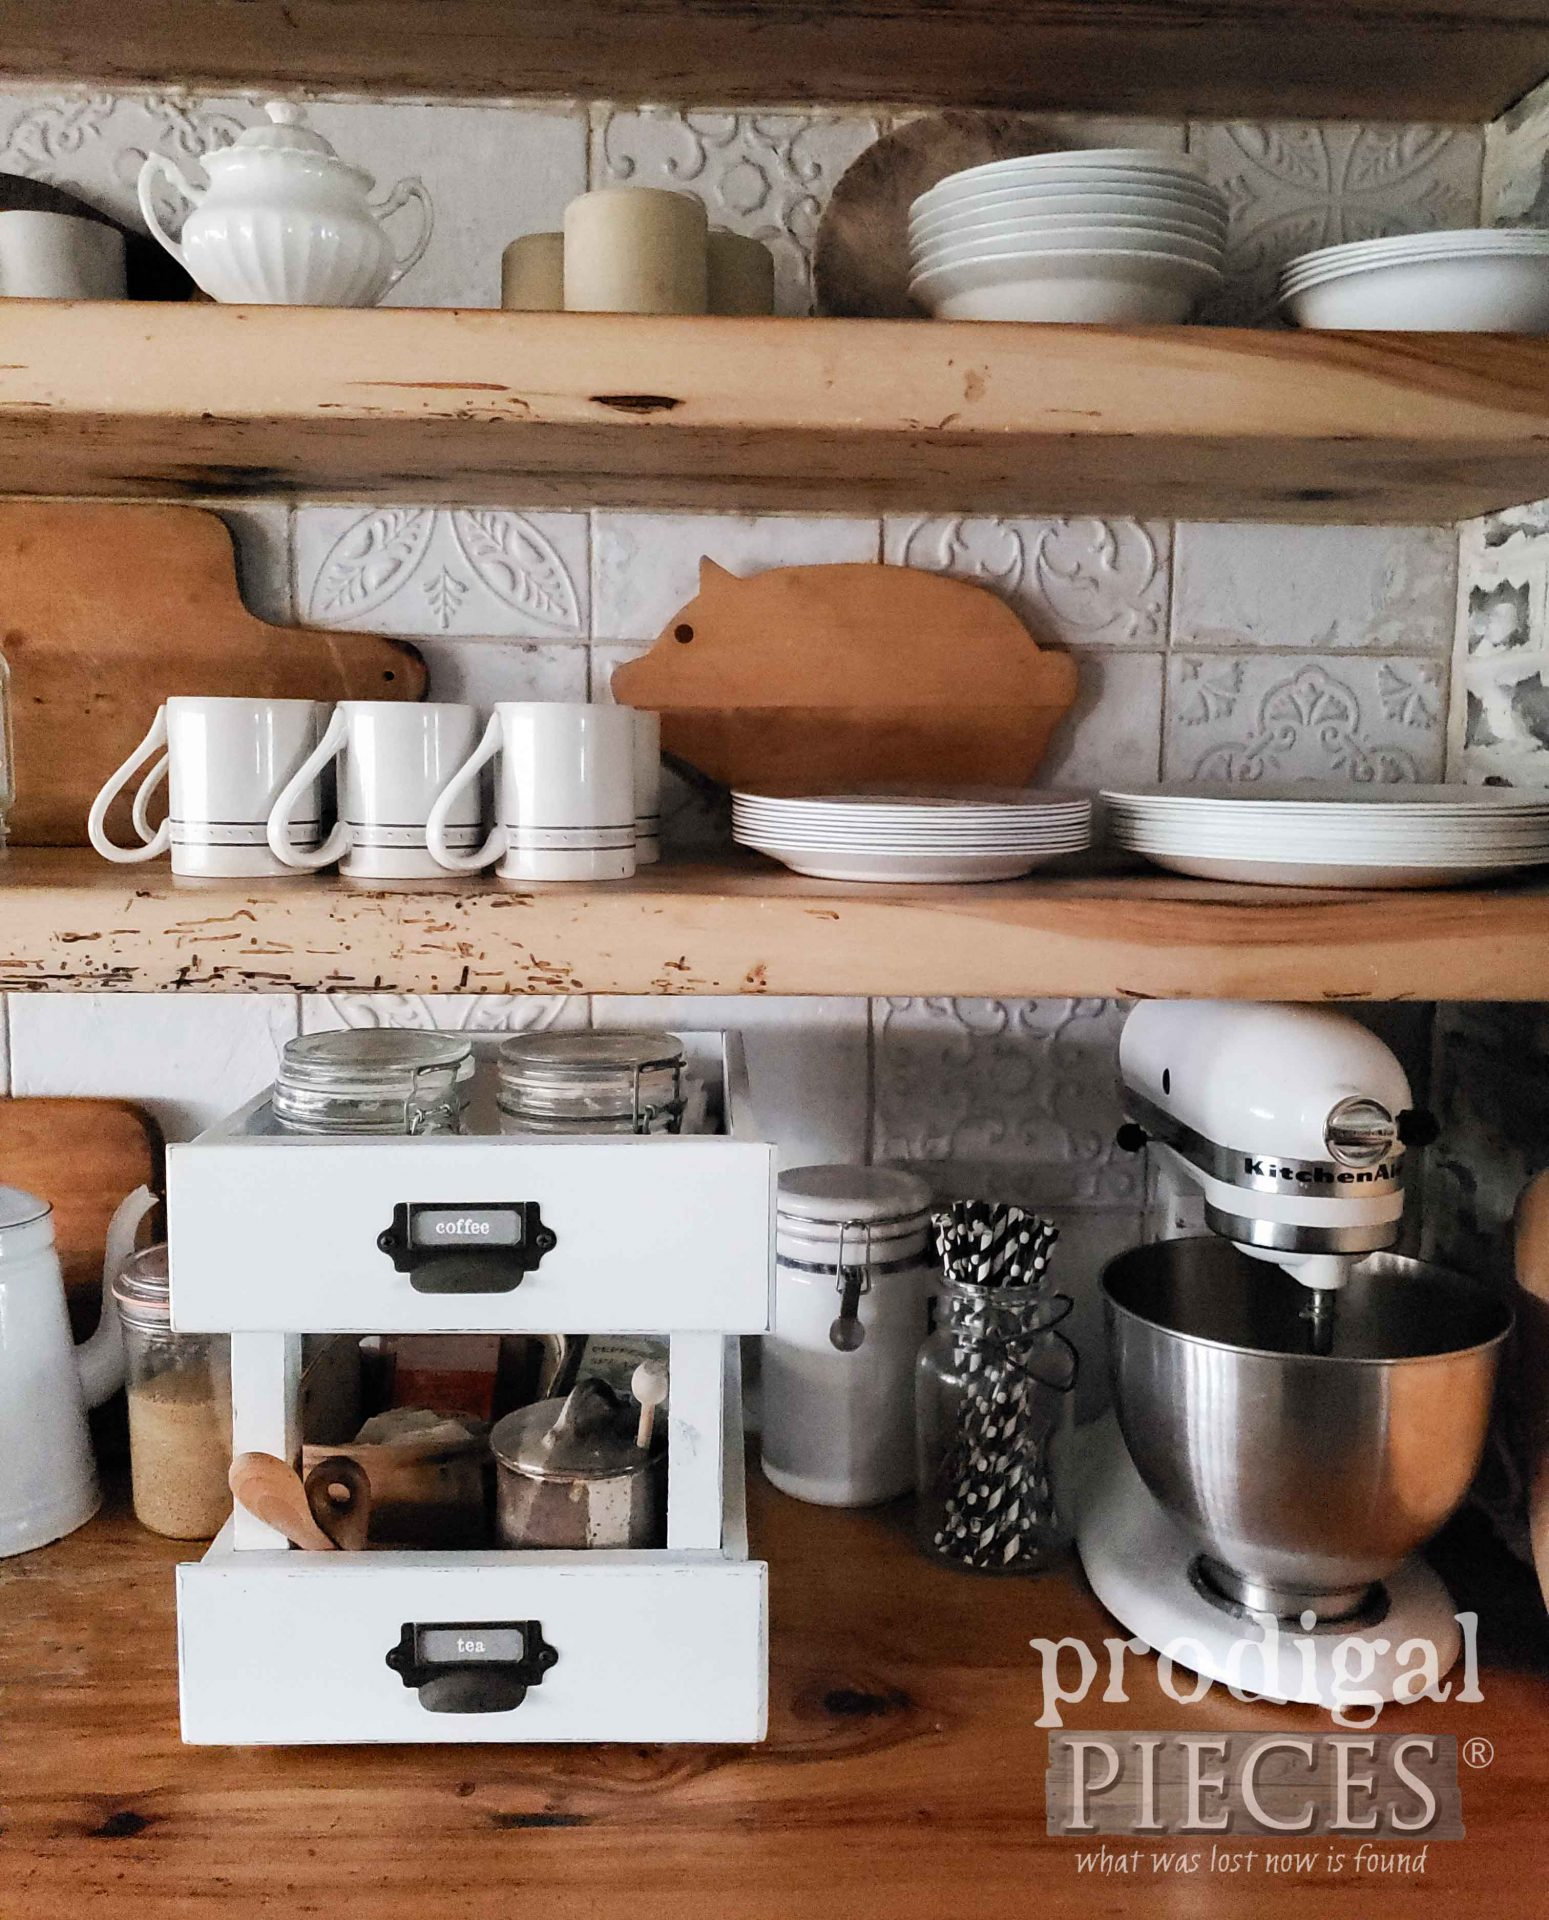 Rustic Farmhouse Kitchen with DIY Decor by Larissa of Prodigal Pieces | prodigalpieces.com #prodigalpieces #farmhouse #kitchen #storage #diy #home #homedecor